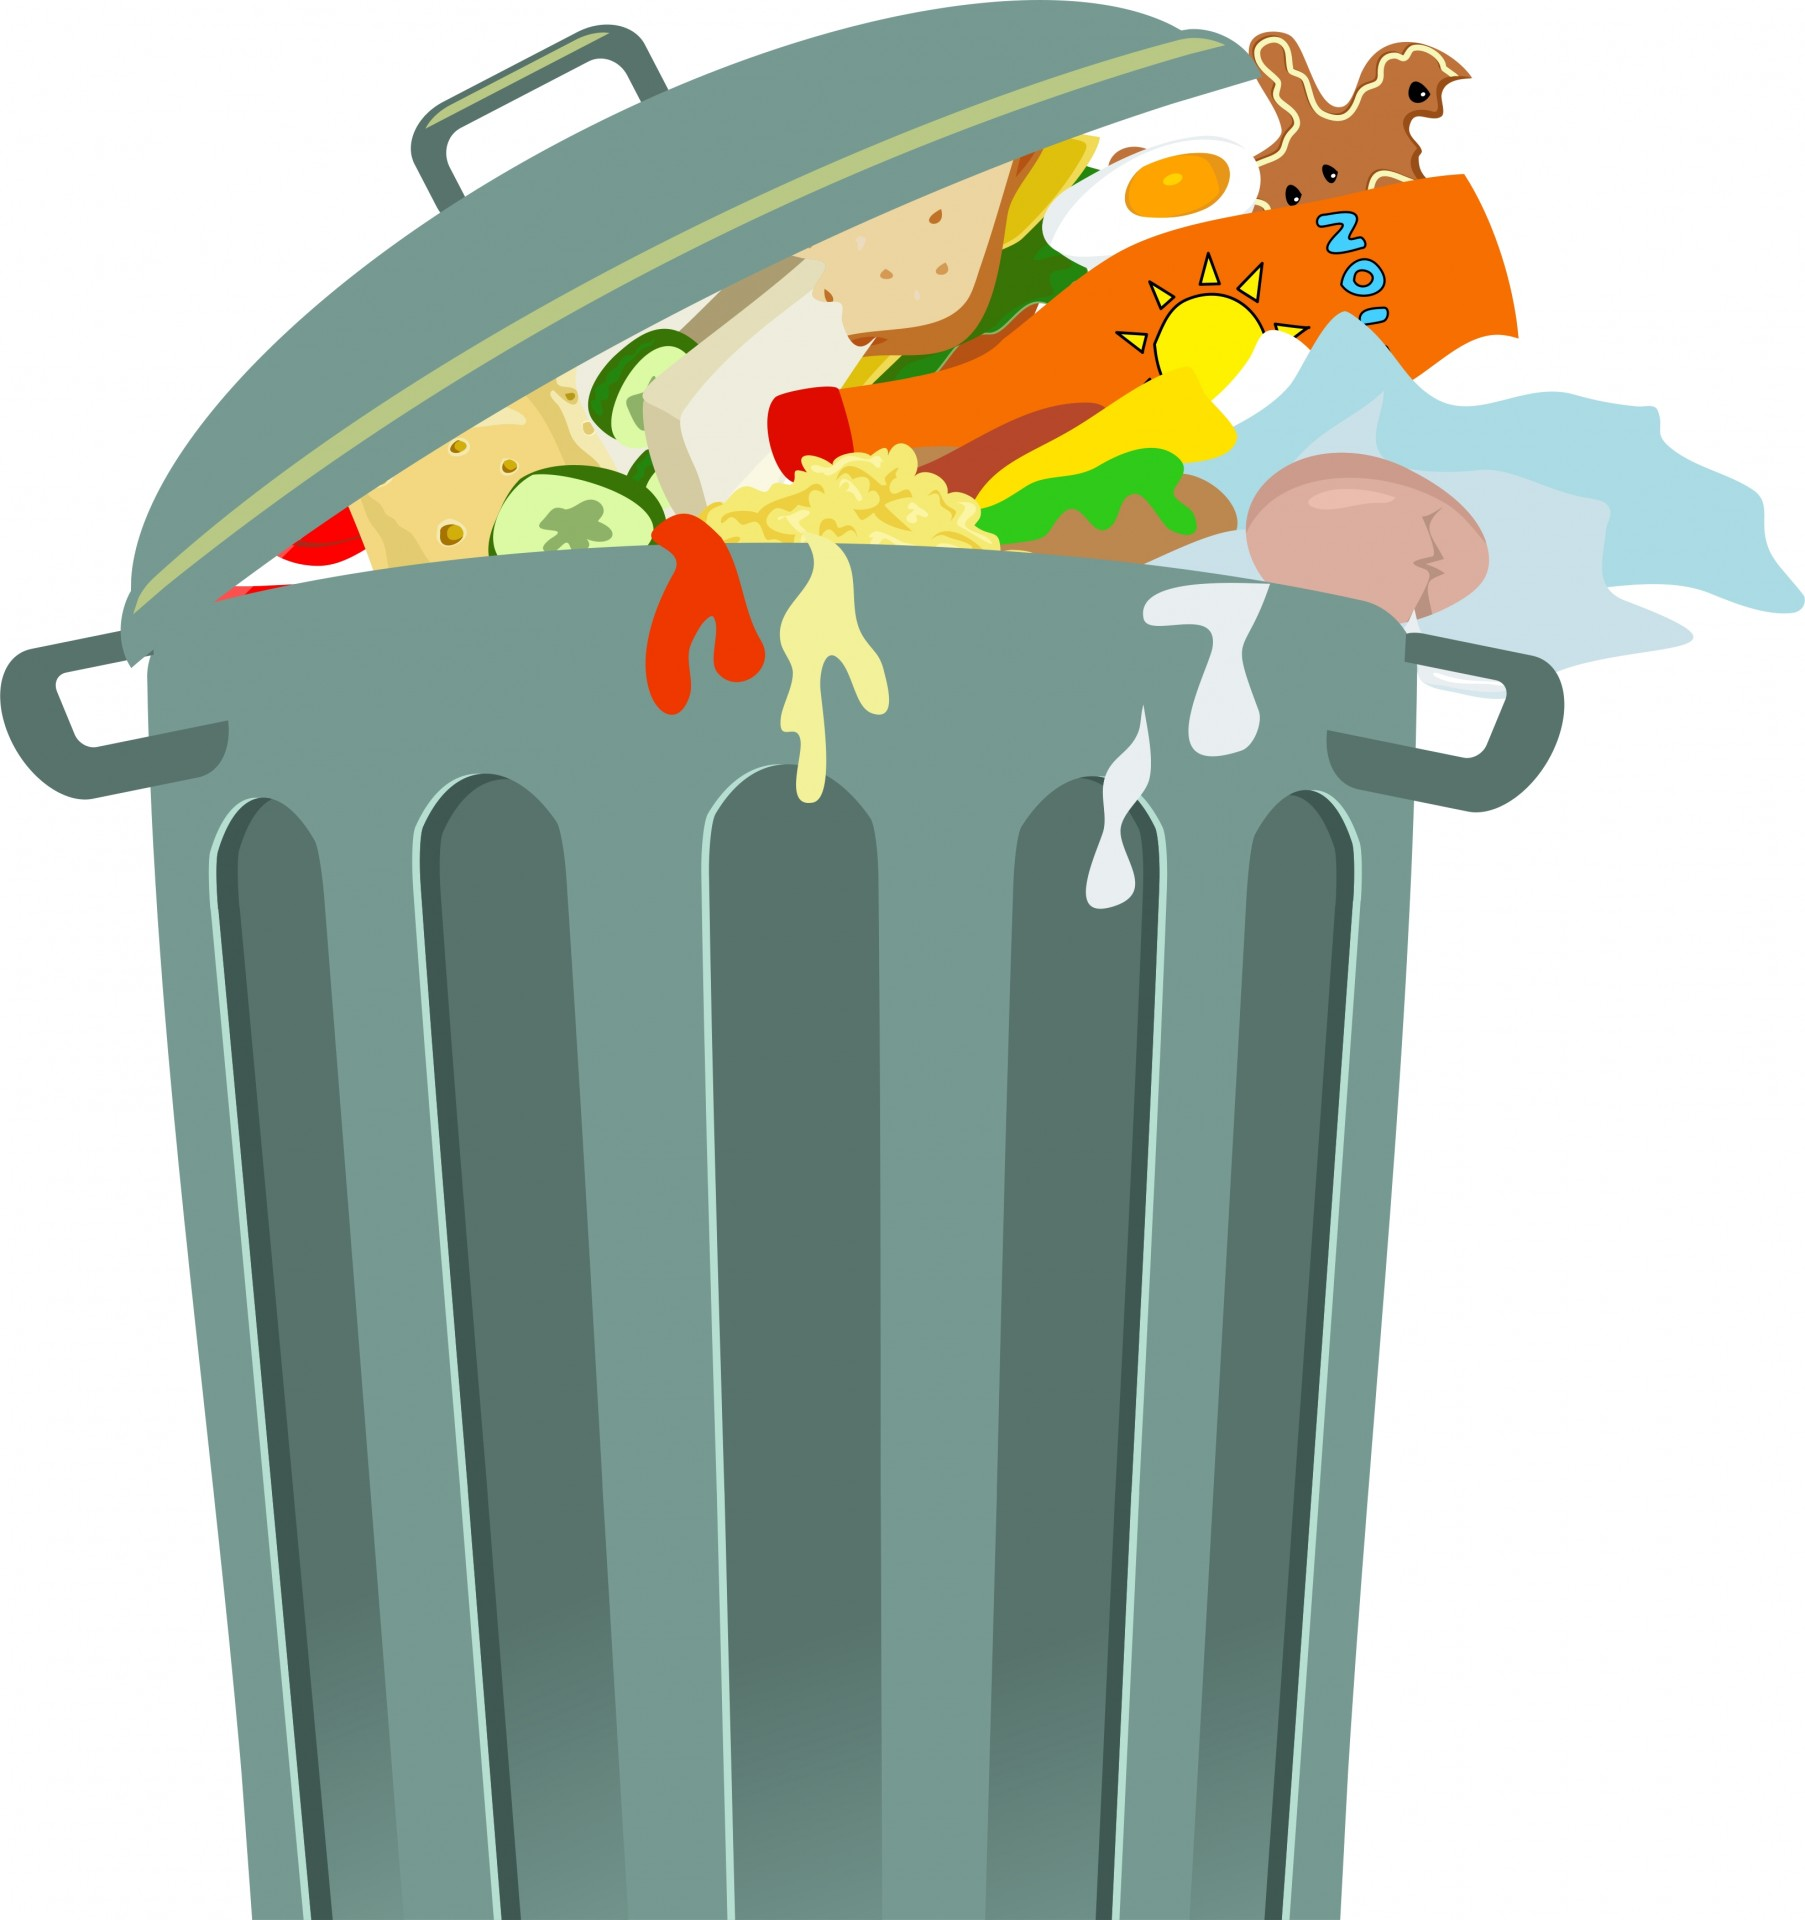 Trash Can Clip Art-Trash Can Clip Art-8